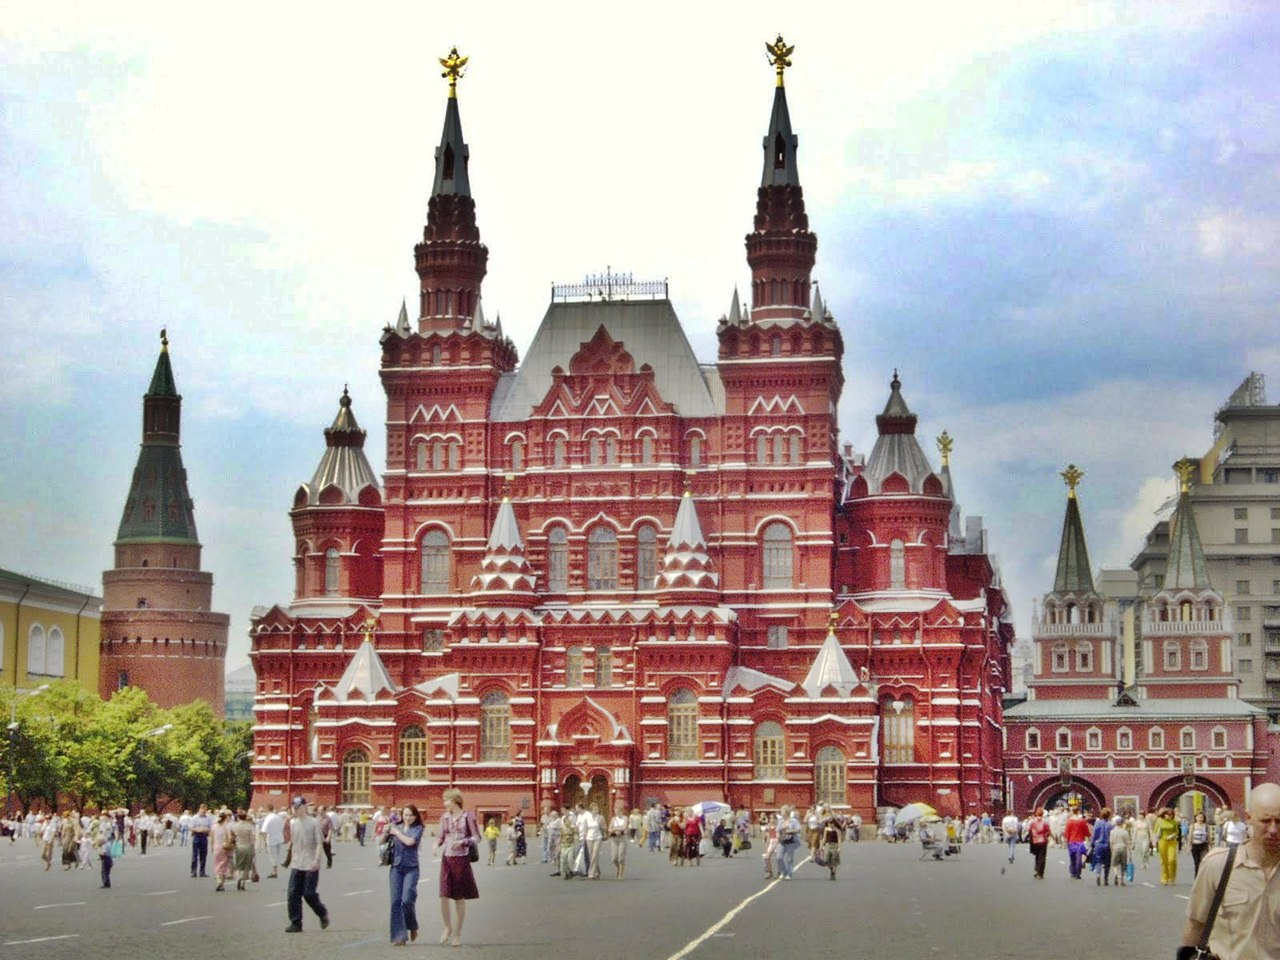 red square - places to go in Europe